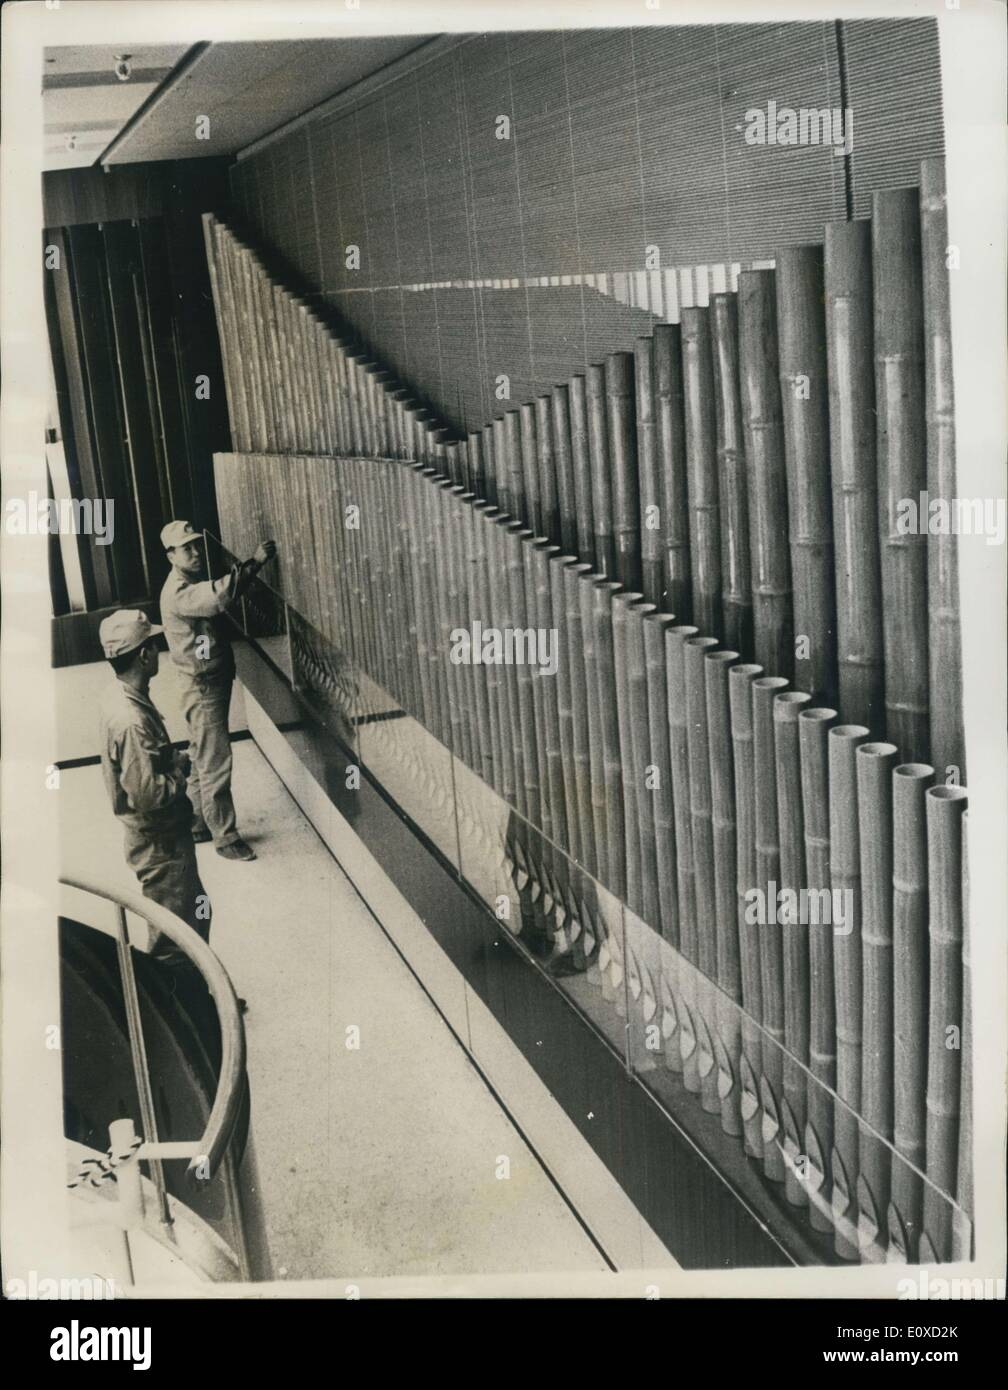 Apr. 25, 1966 - Pipe Organ made of Bamboos: The world's first bamboo pipe organ appeared recently at Sony building Stock Photo